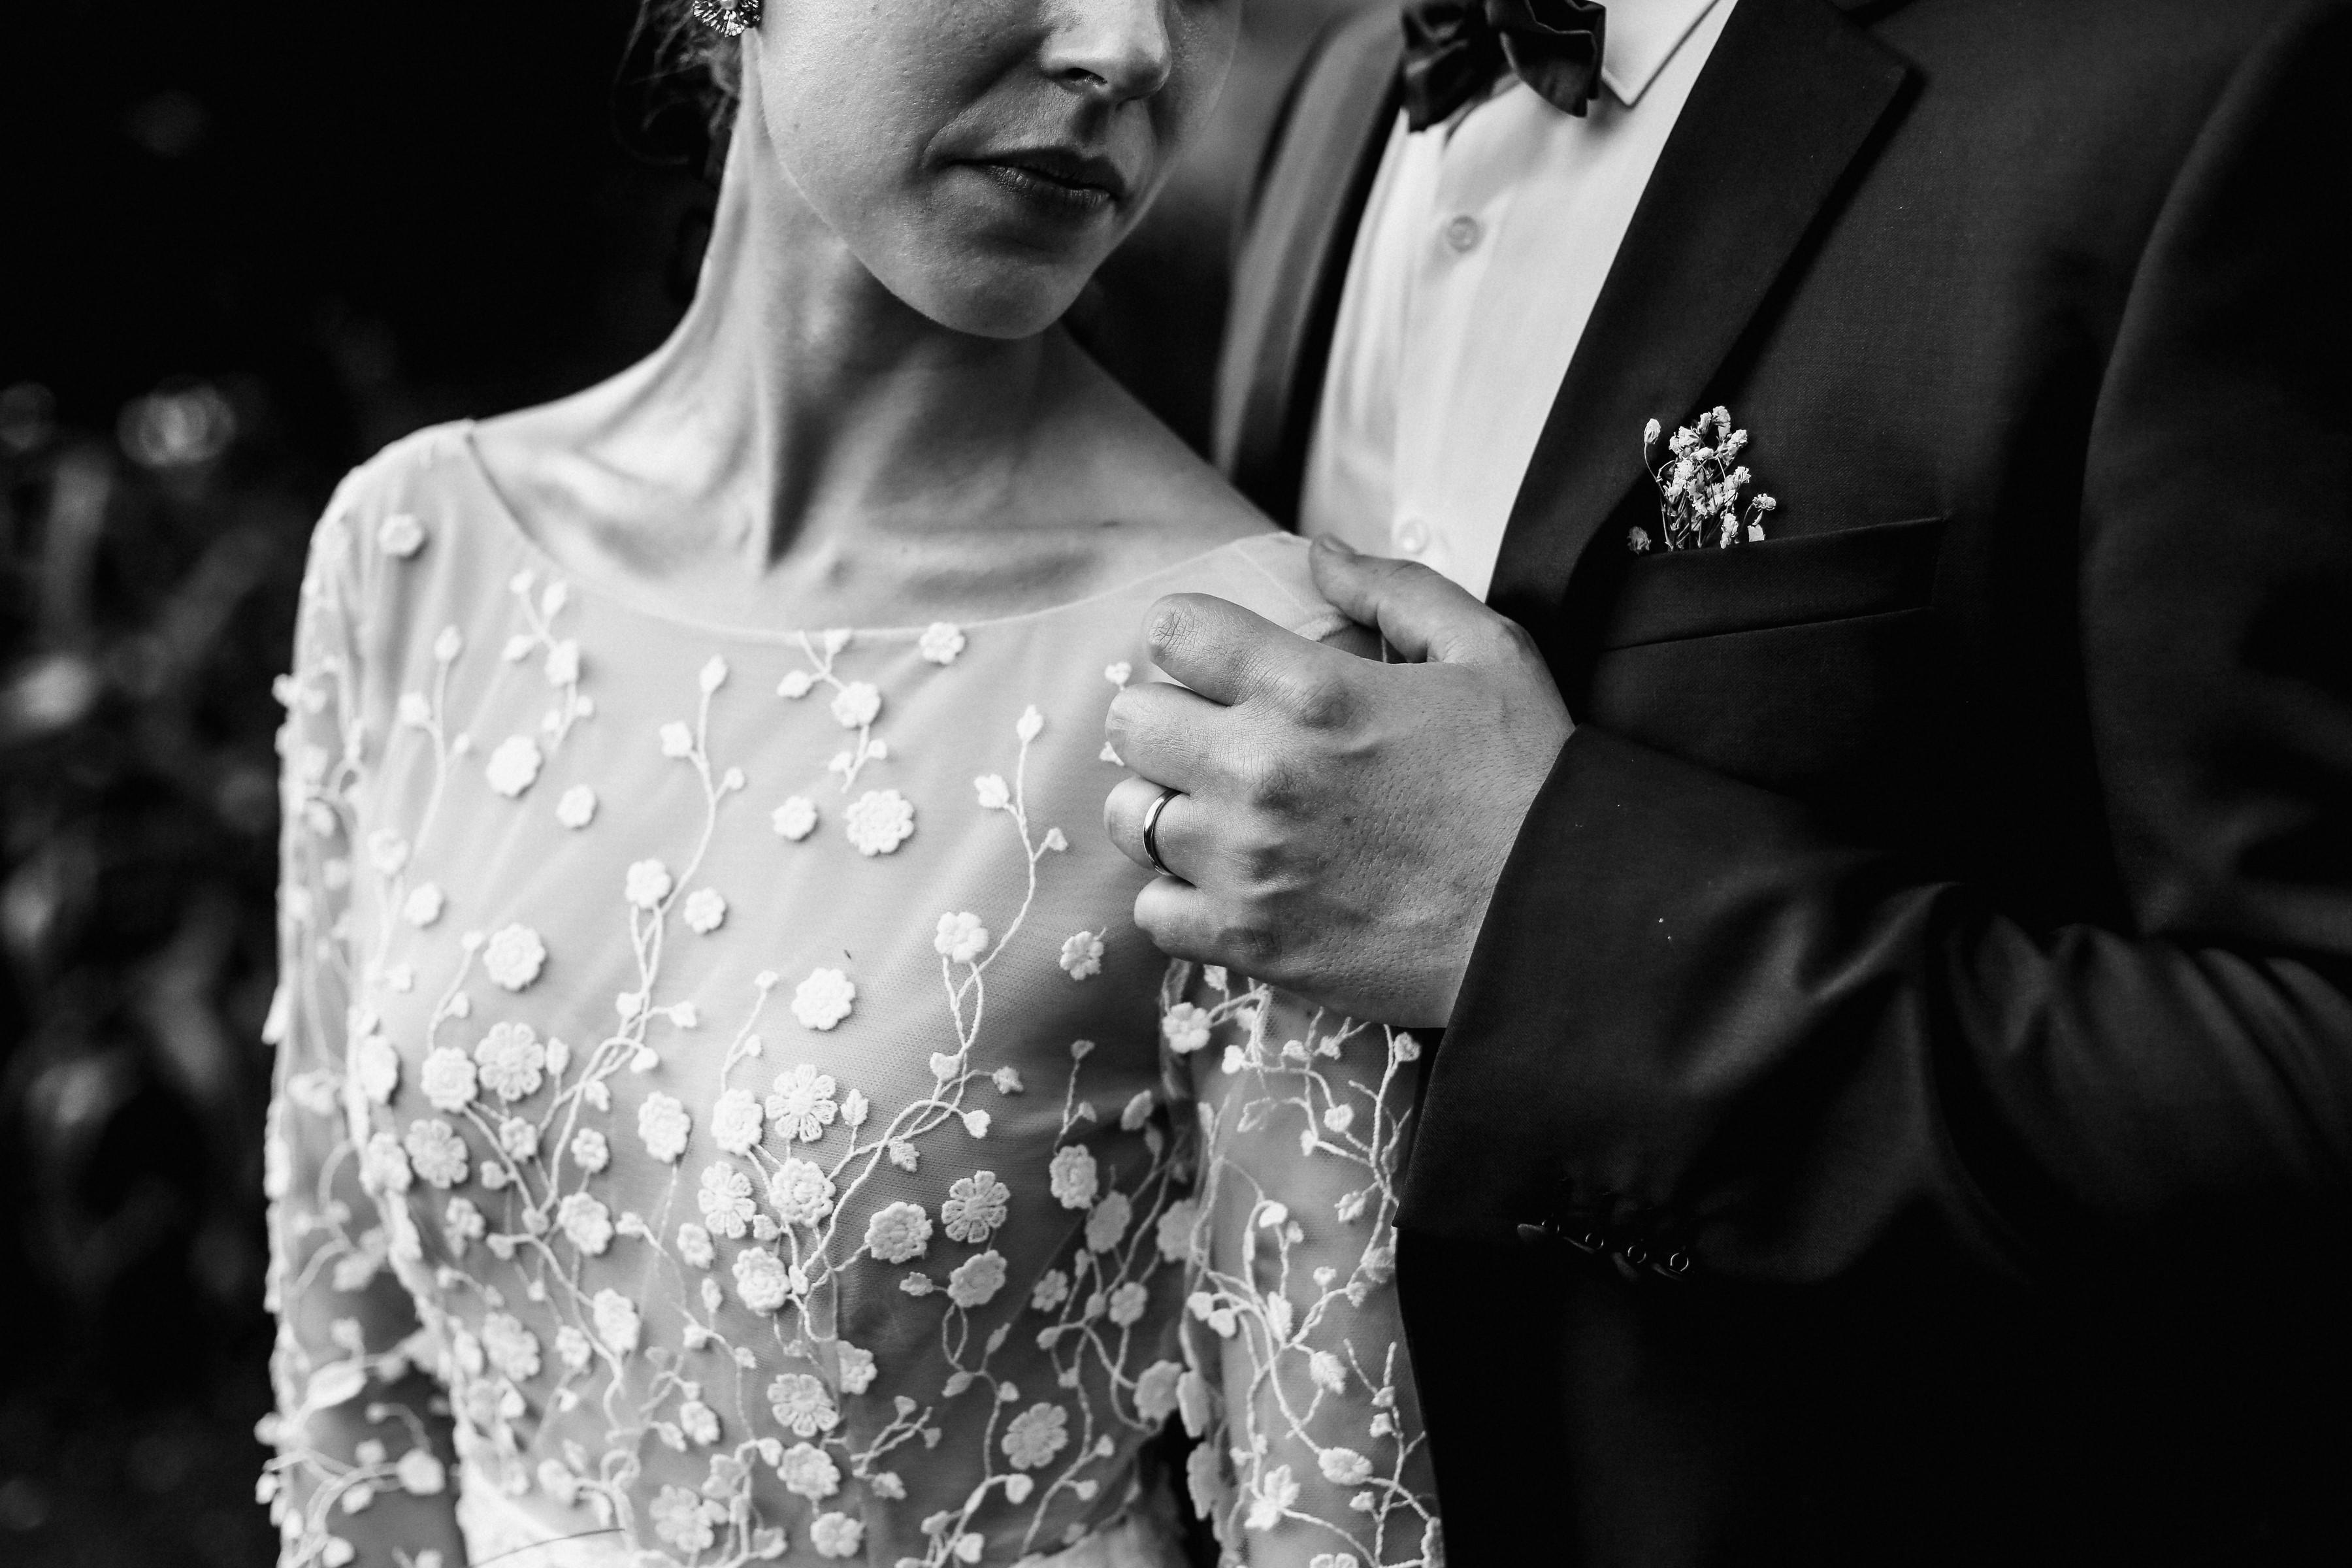 detail of applique gown - photo by Amandine Ropars